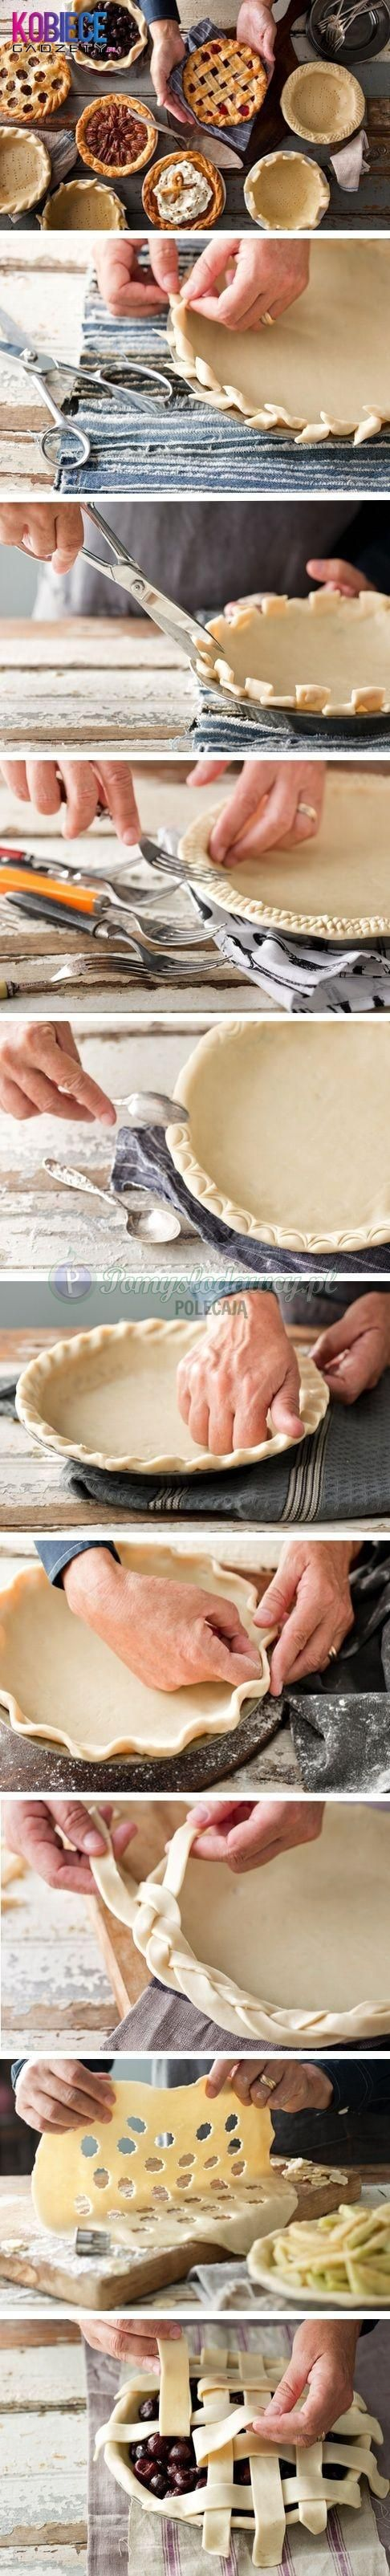 Cool, decorative pie crust